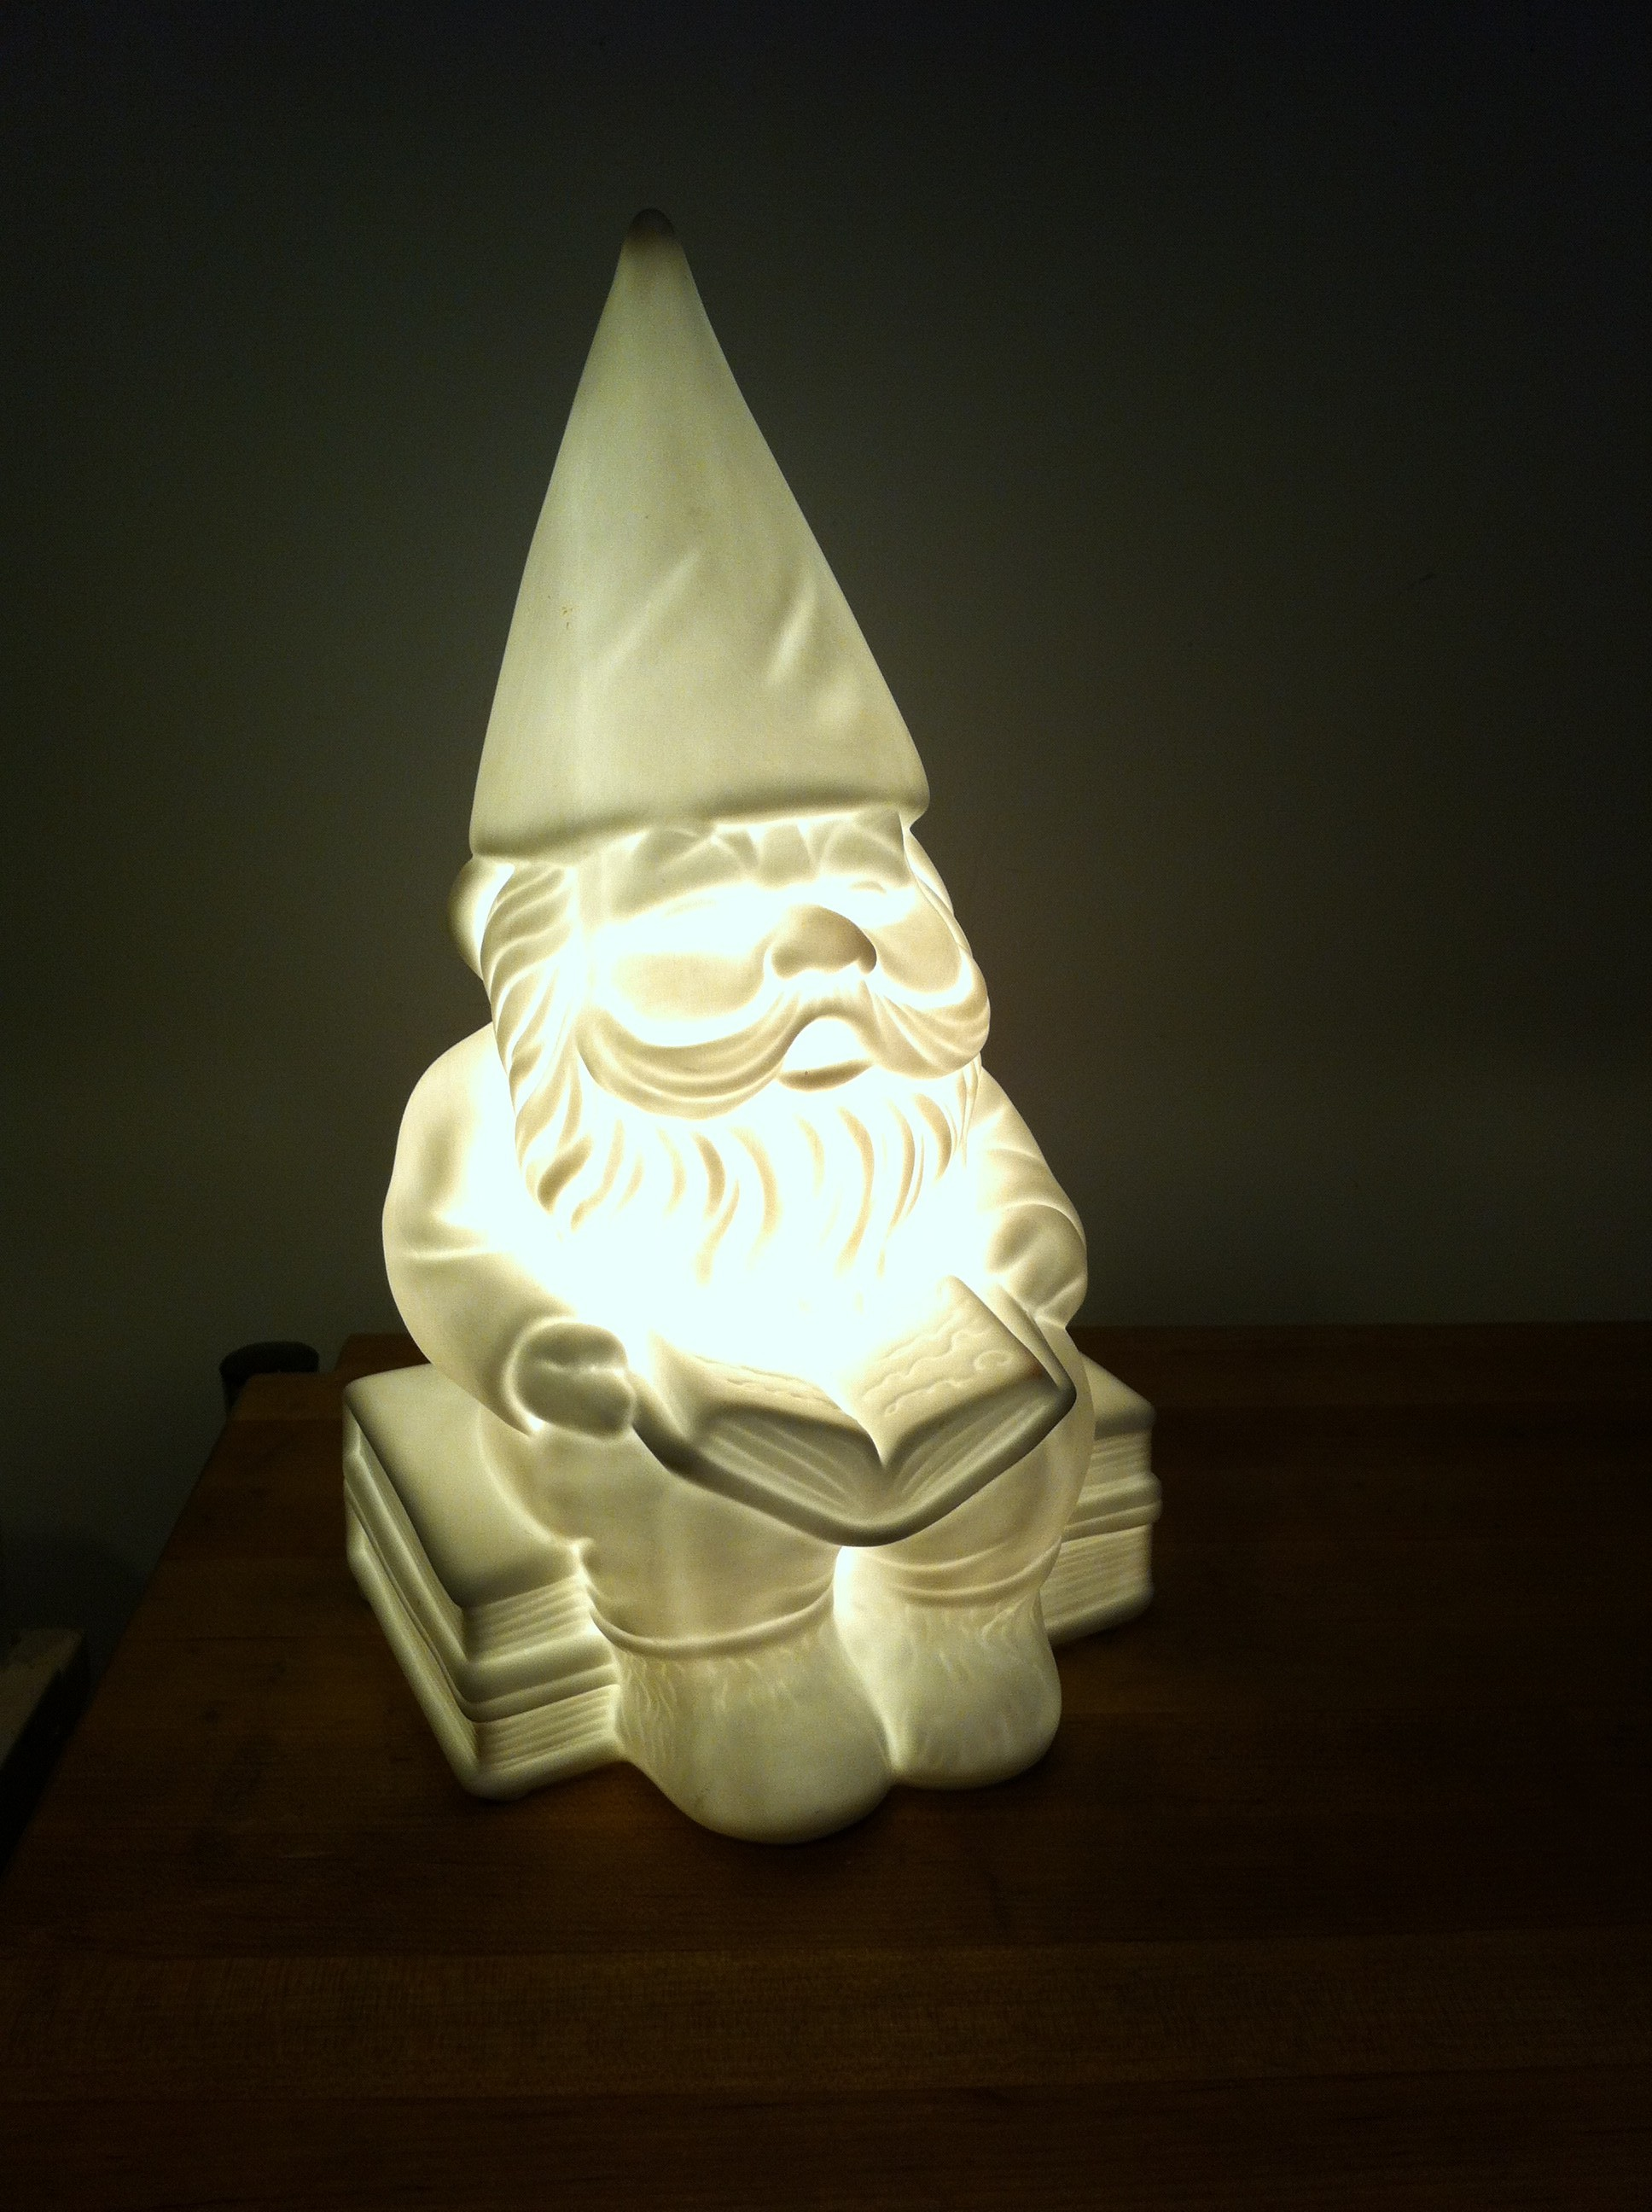 Pic of the 'good luck gnome' all aglow